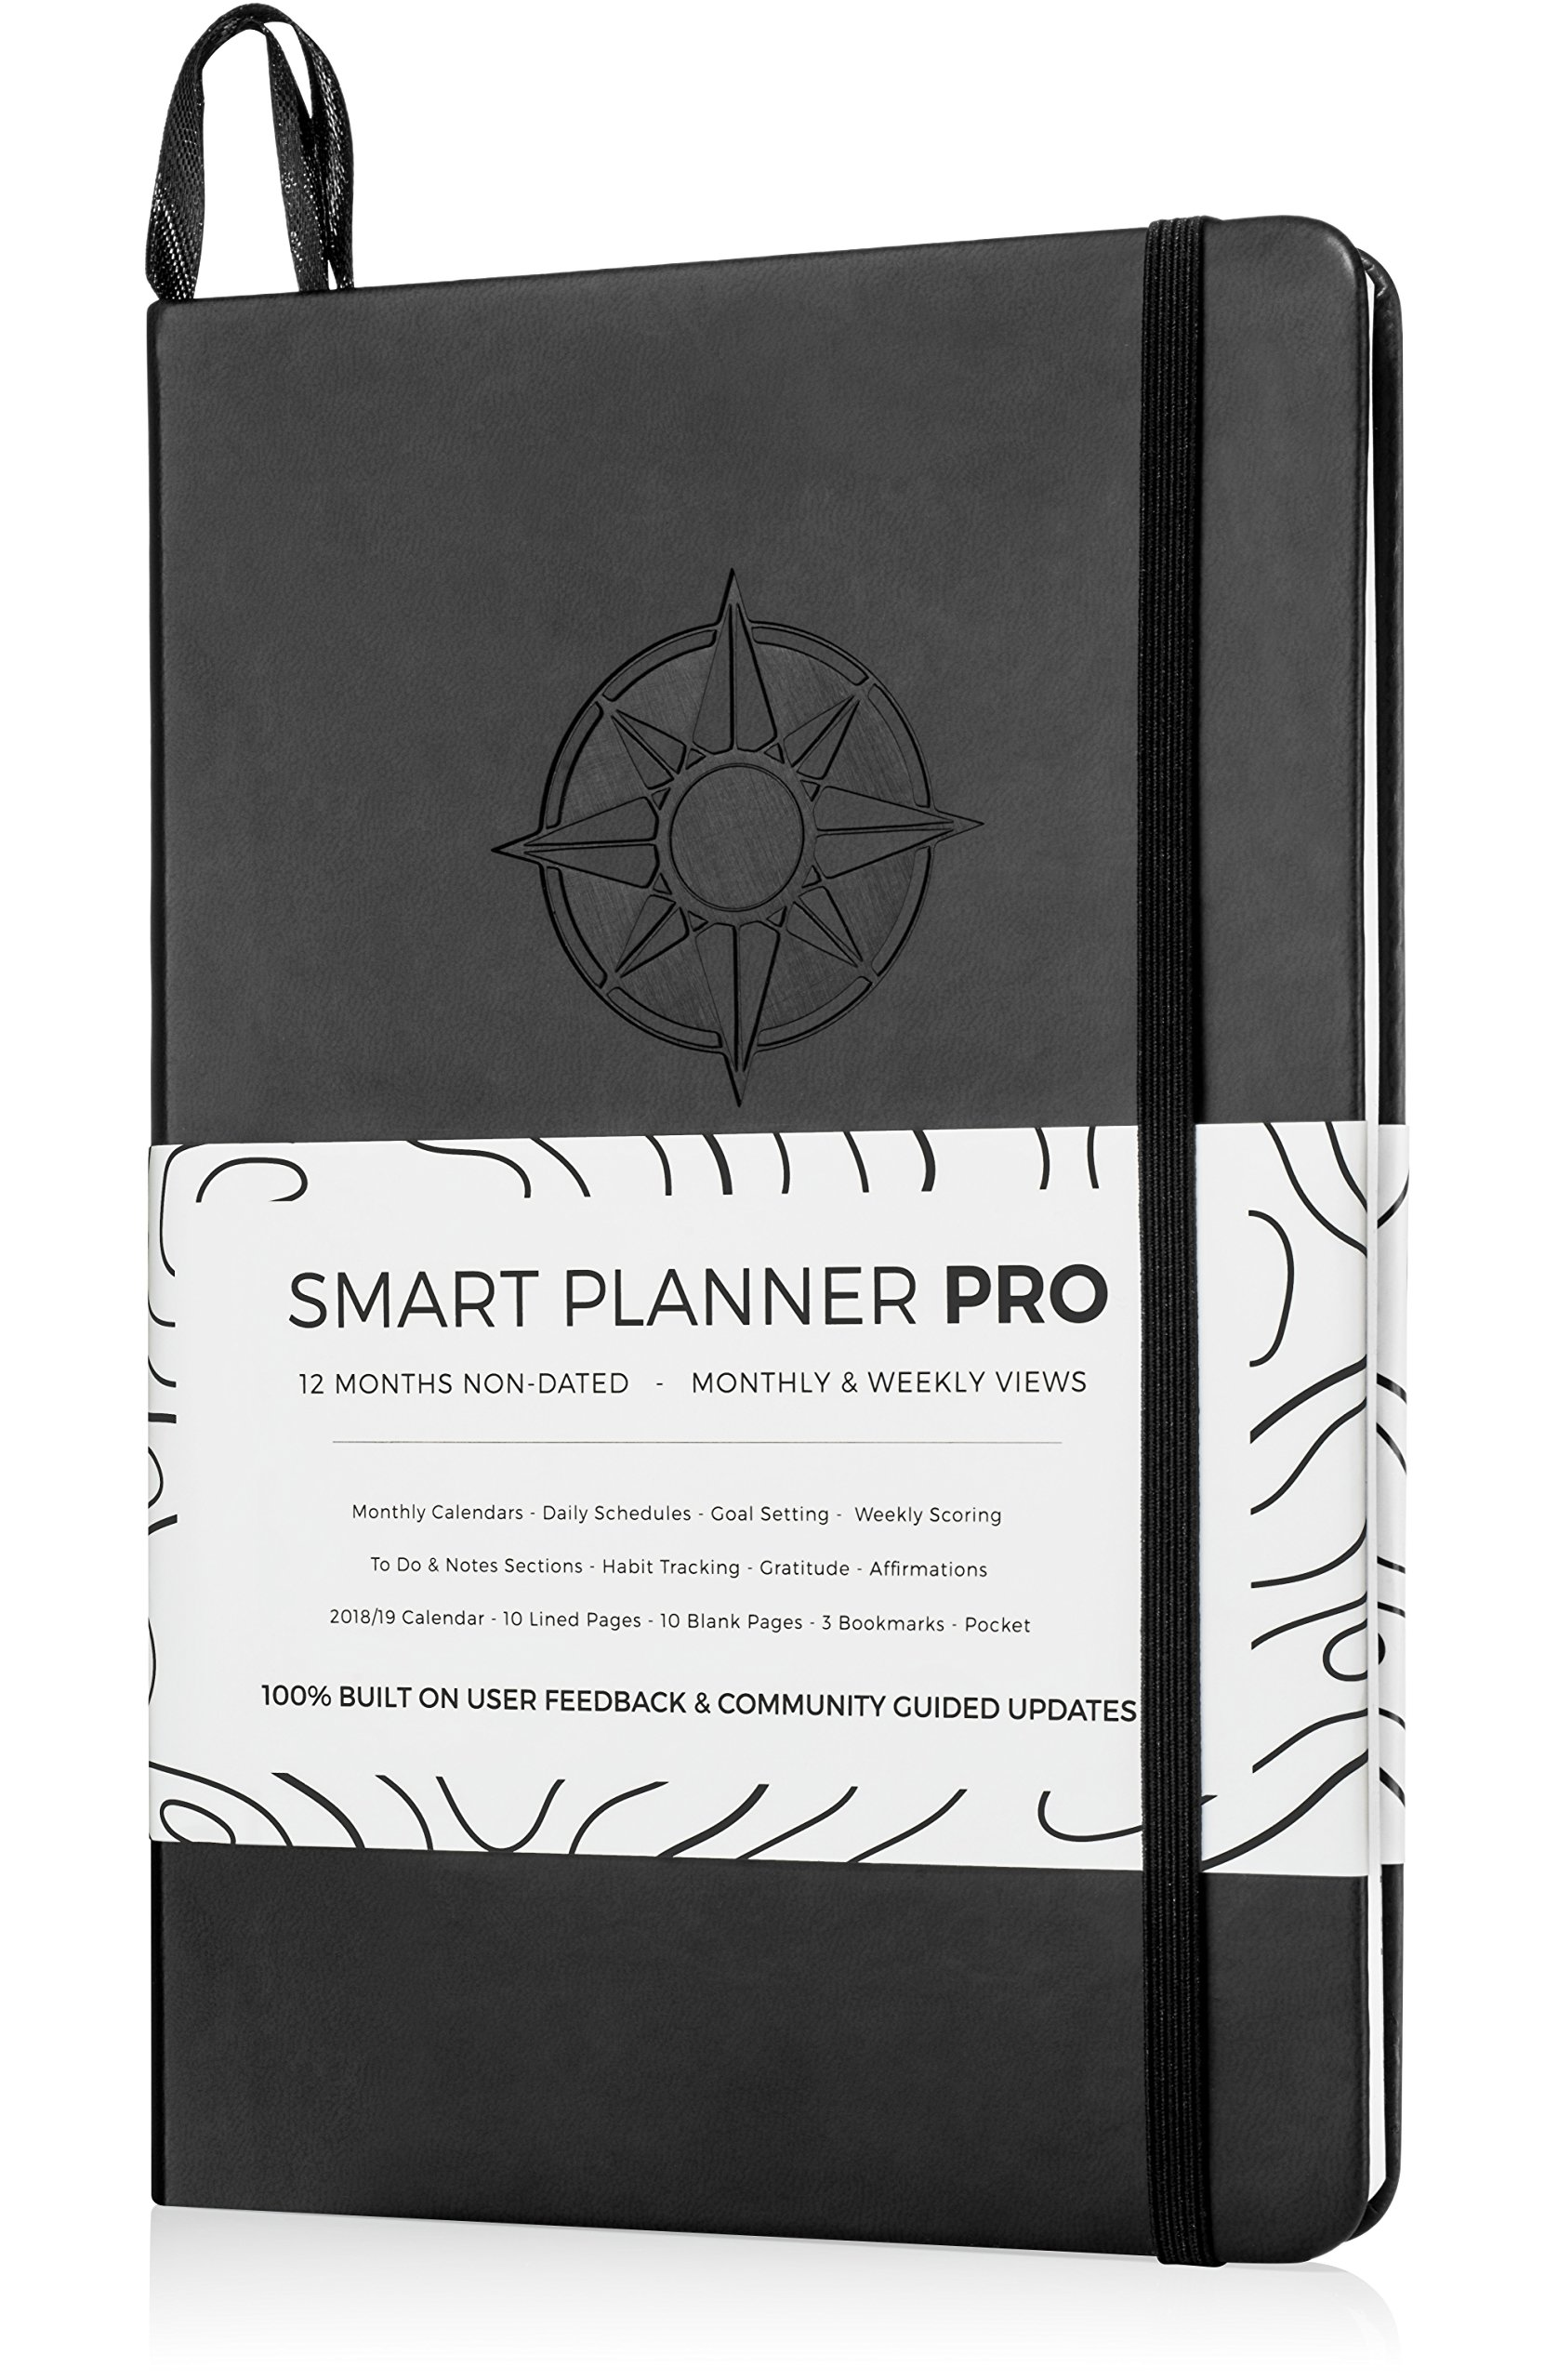 Planner 2018-2019 - Tested & Proven to Achieve Goals & Increase Productivity, Time Management & Happiness - Daily Weekly Monthly Planner with Gratitude Journal, Hardcover, Undated - 1 Year Guarantee